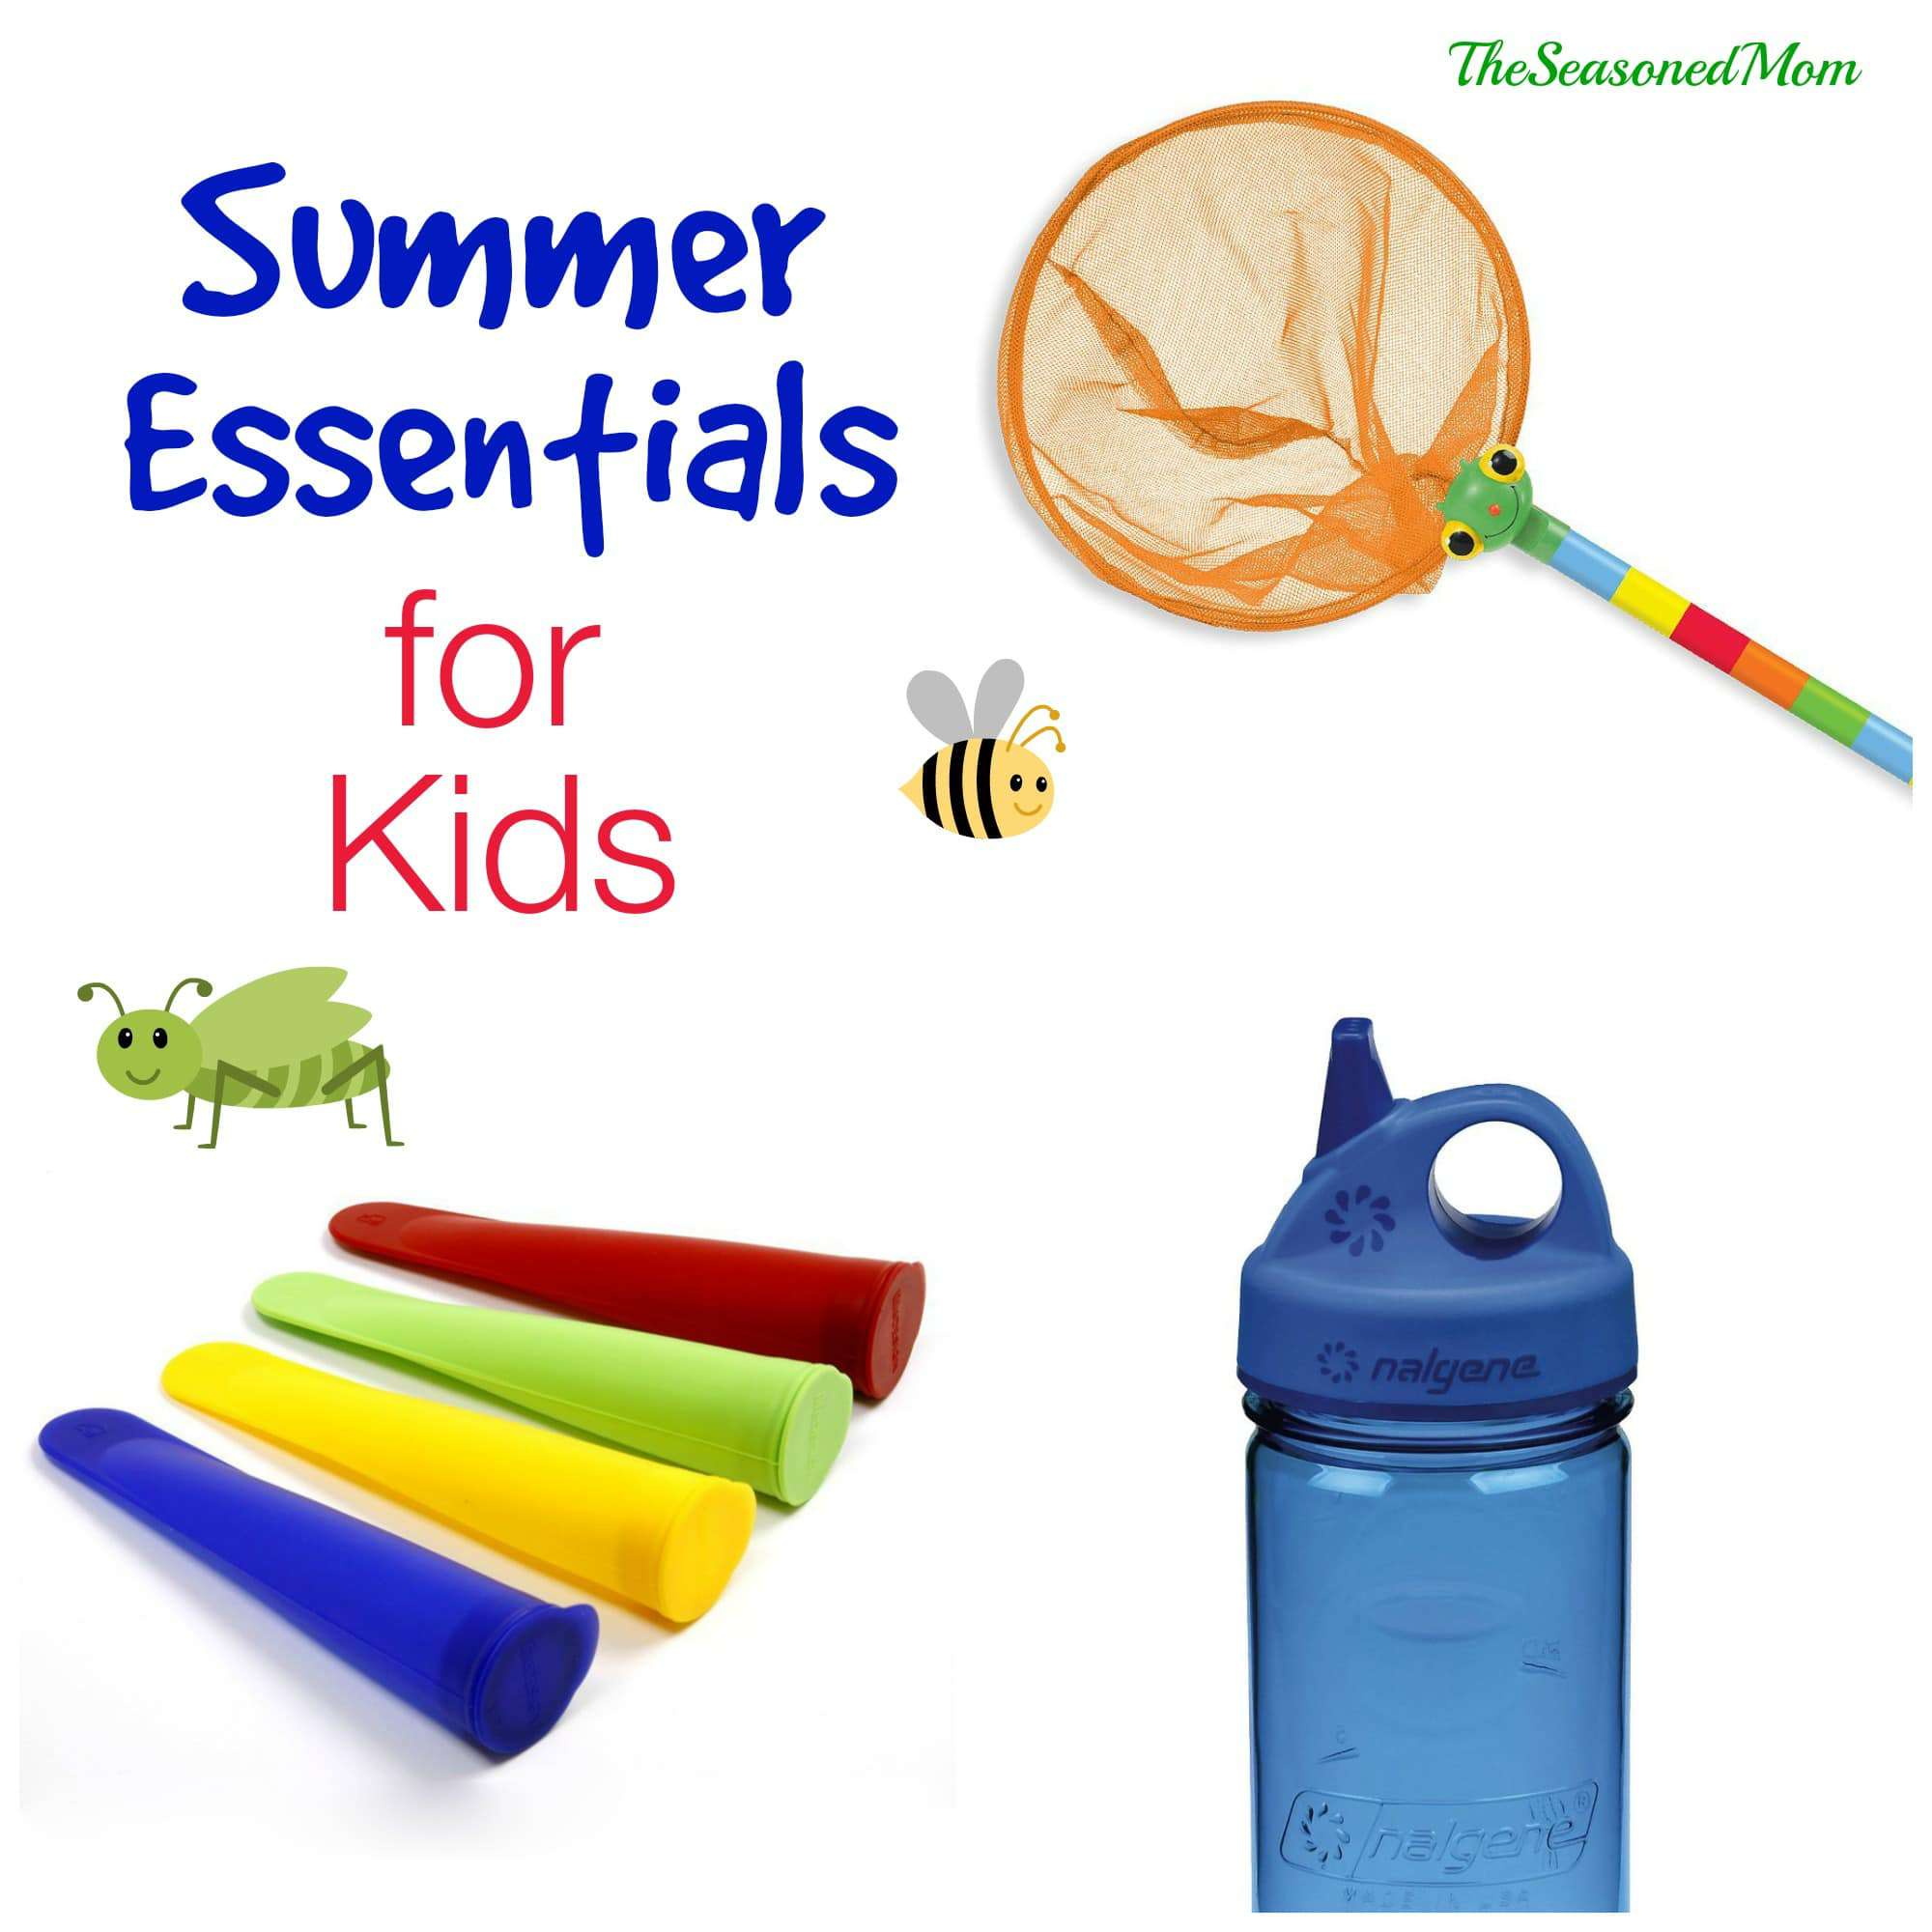 Summer Essentials for Kids - The Seasoned Mom